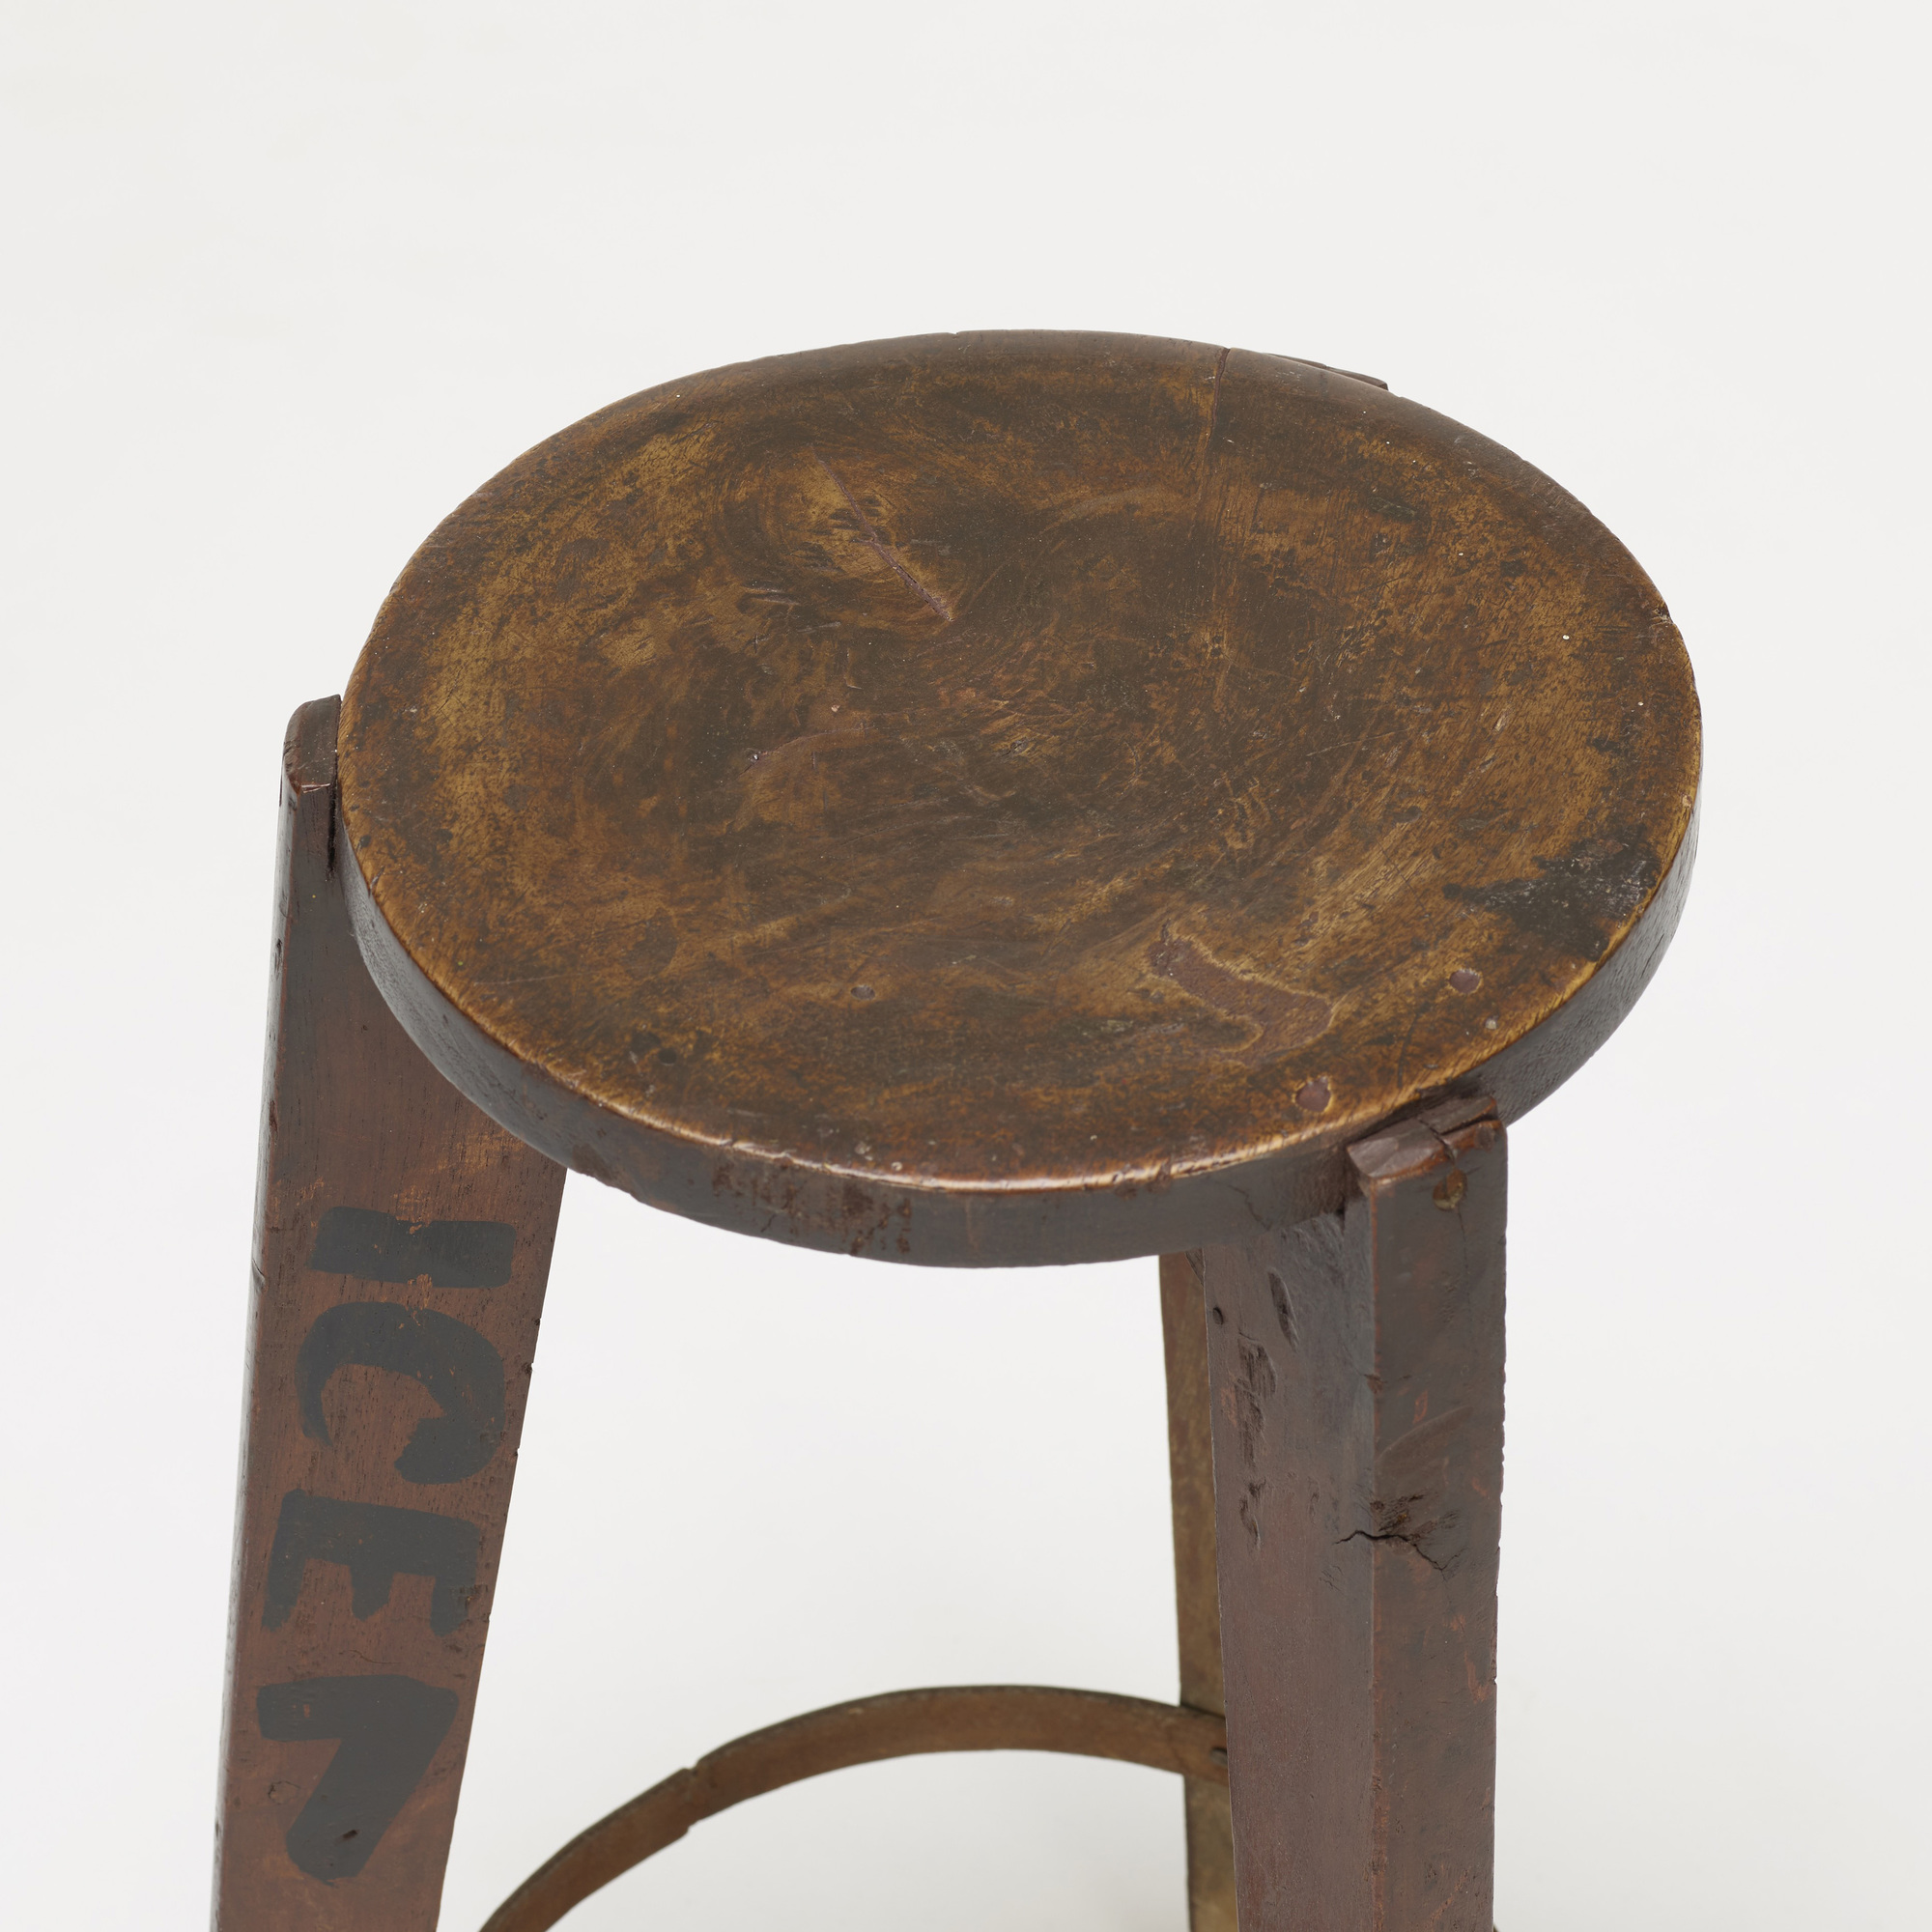 106: Pierre Jeanneret / set of four stools from Punjab University, Chandigarh (3 of 4)